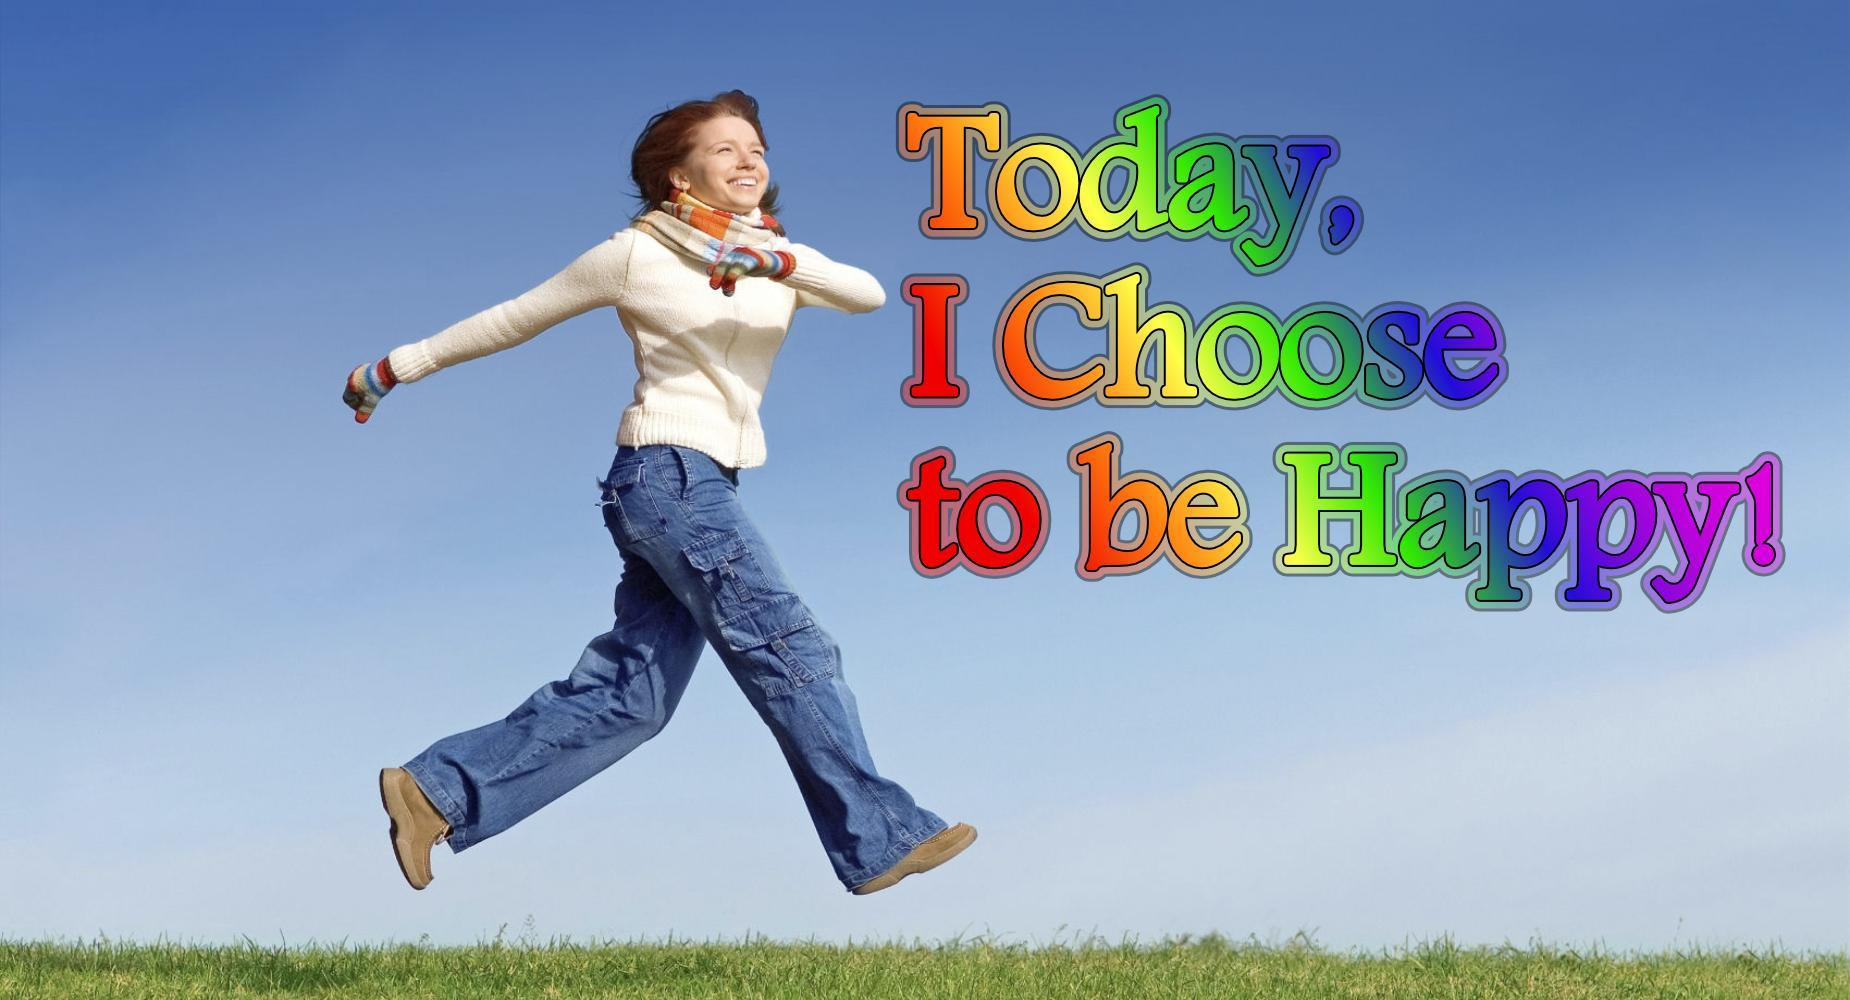 Today, I choose to be happy